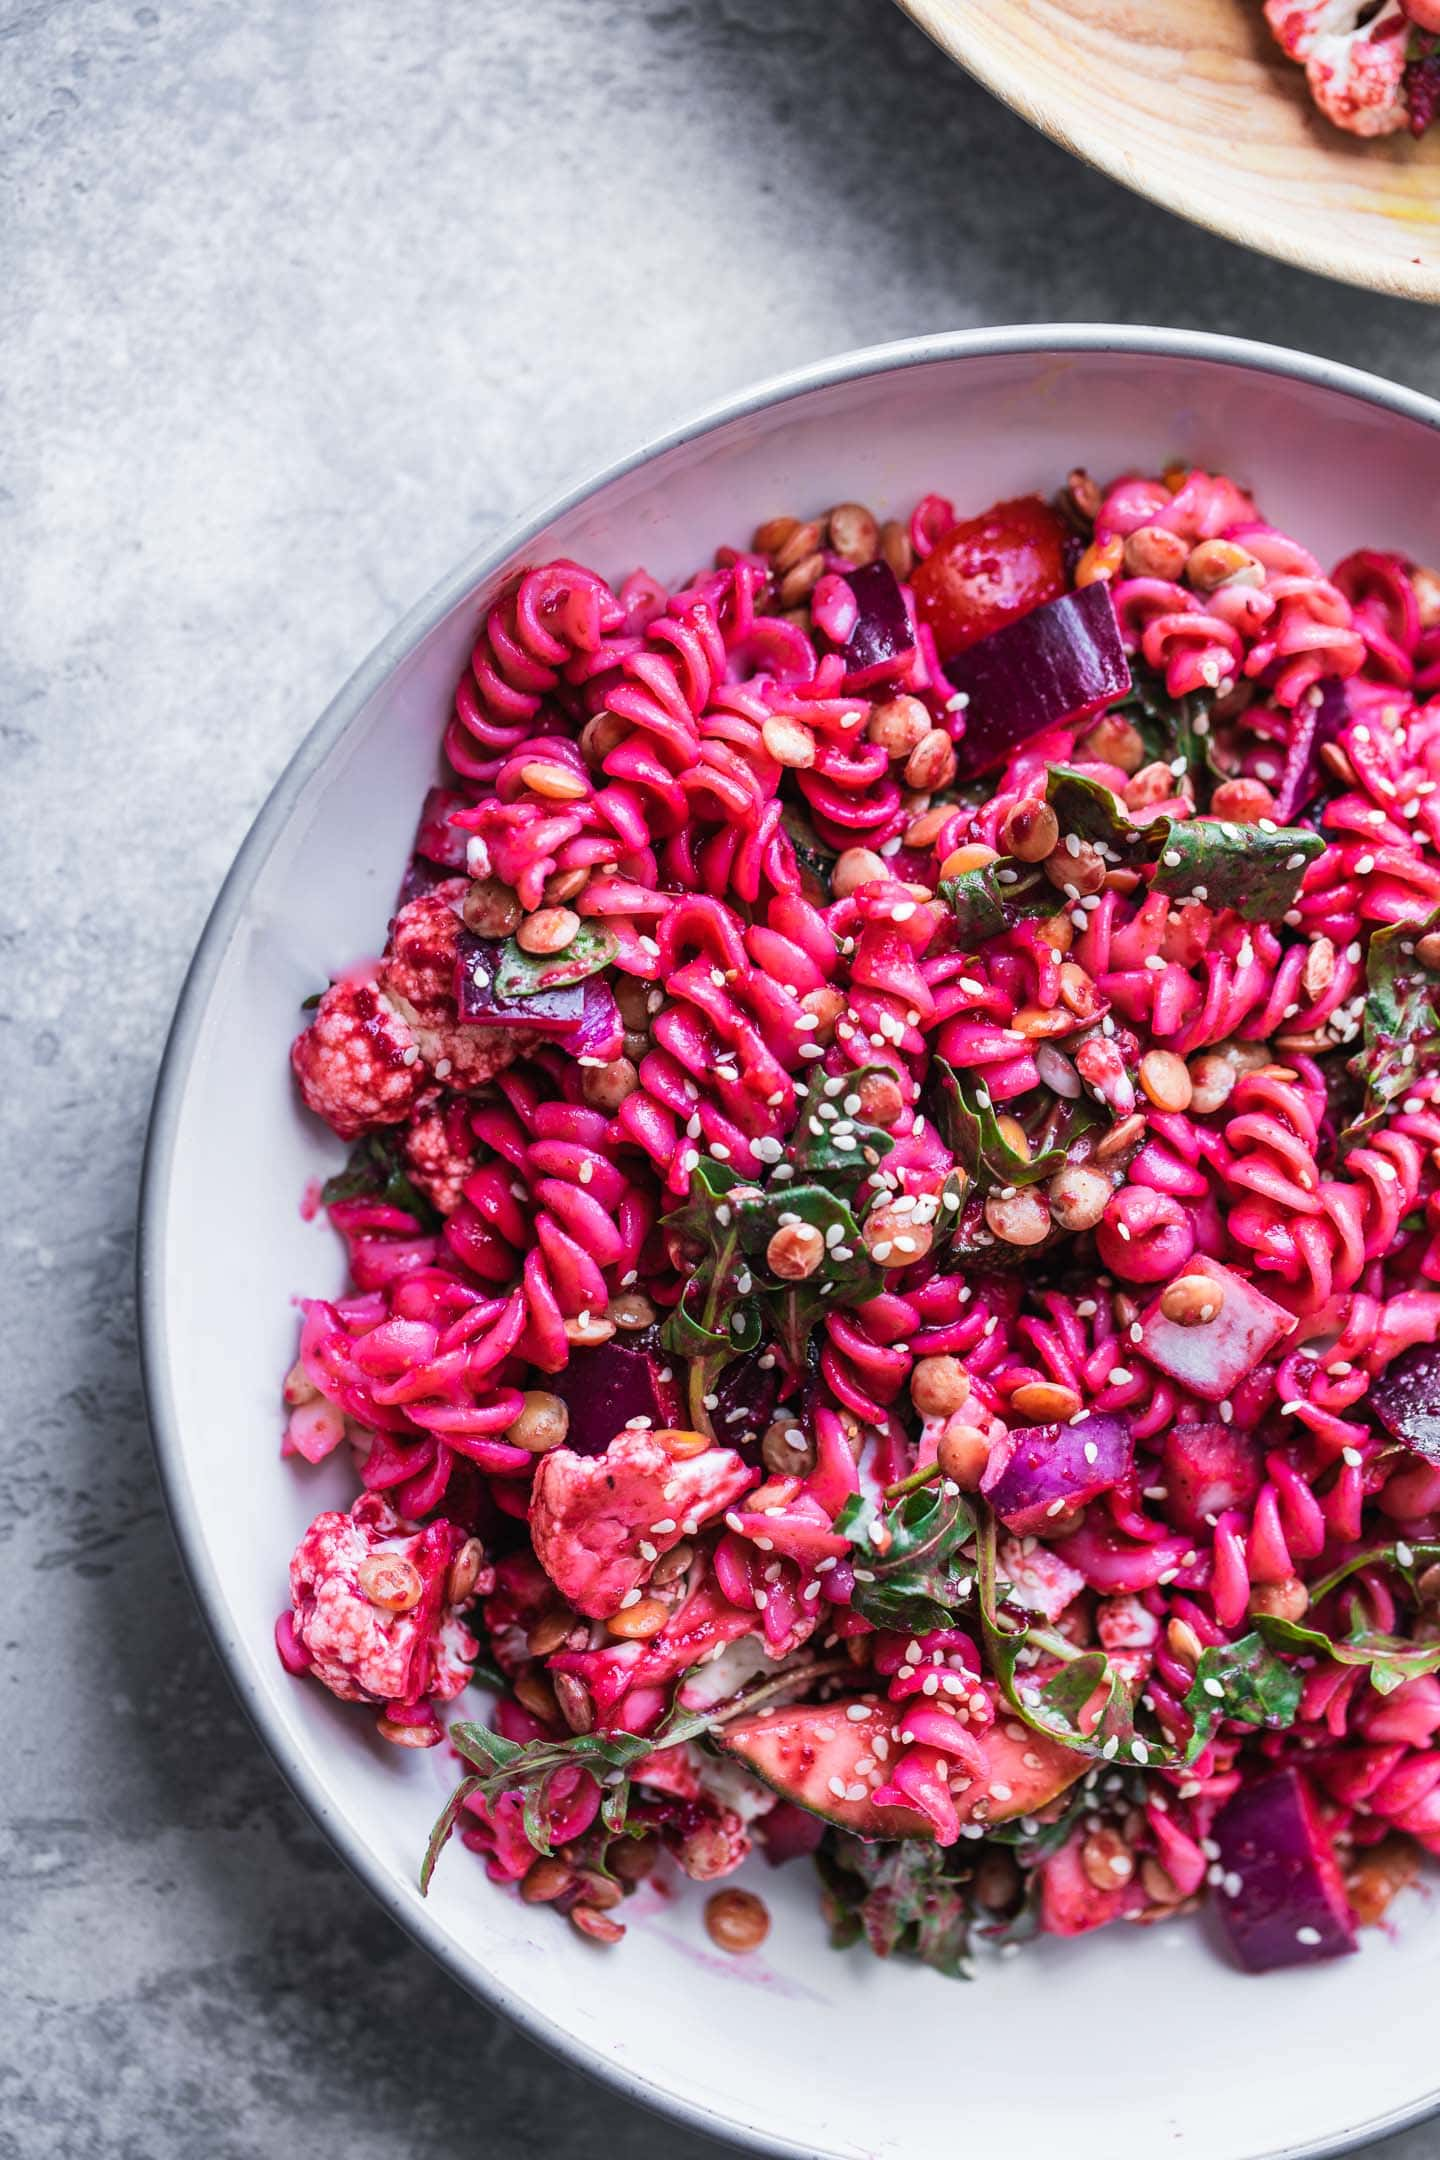 Pasta salad with beetroot vegetables and lentils